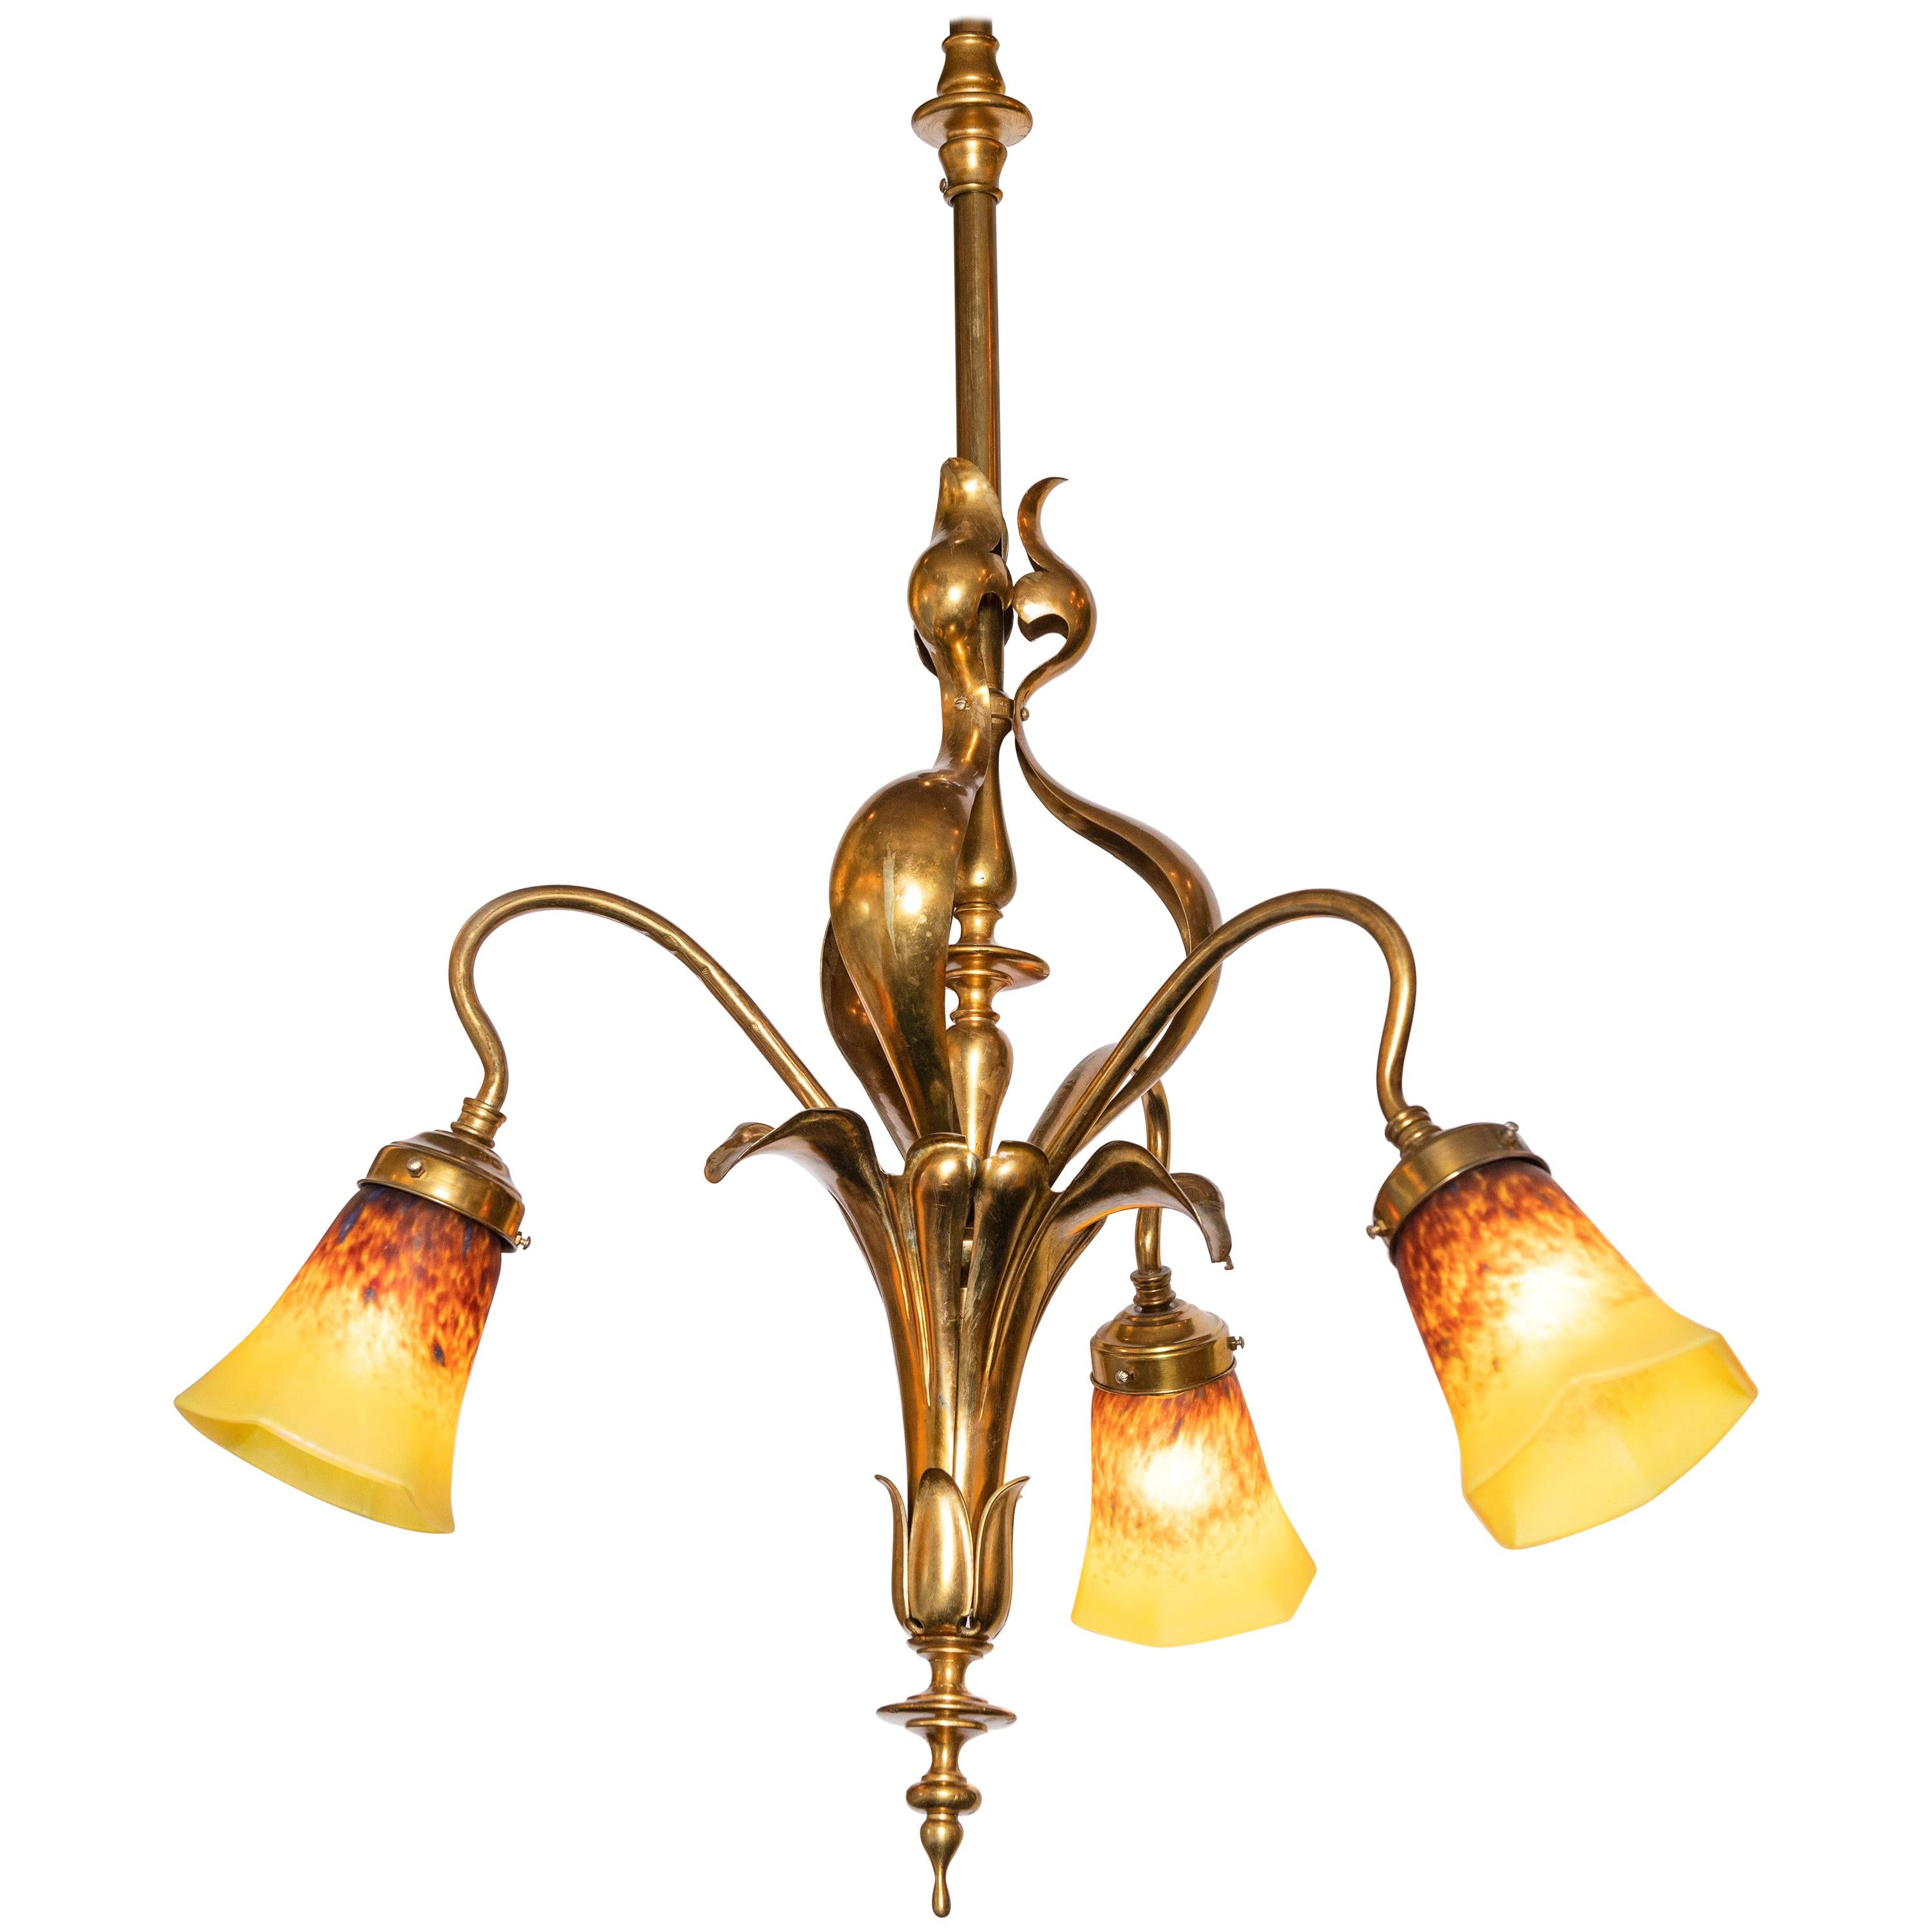 Bronze and Artistic Glass Chandelier, France, Early 20th Century